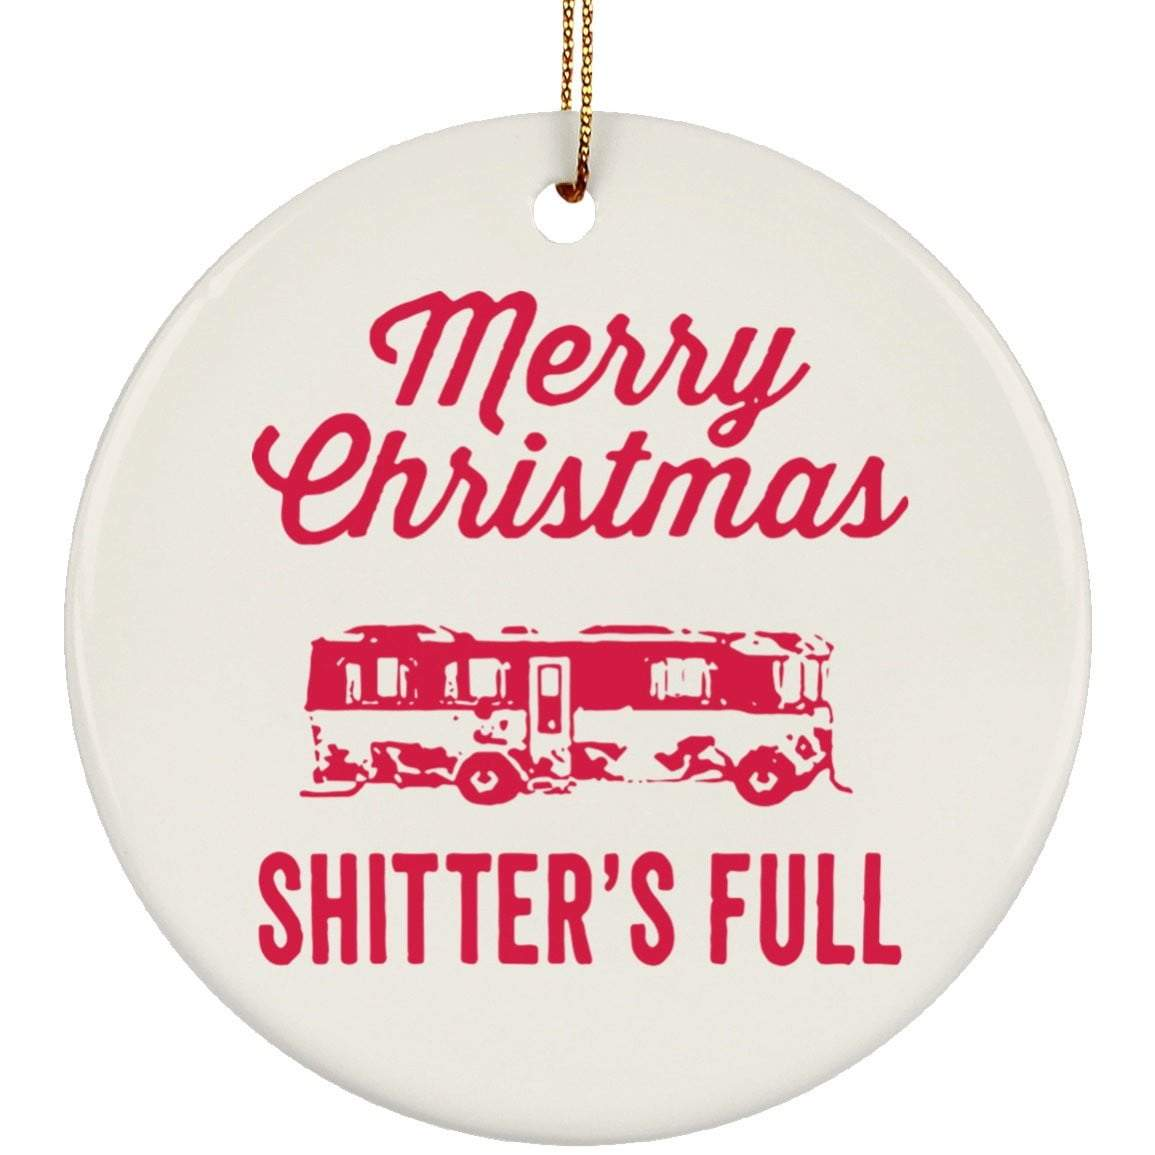 MERRY CHRISTMAS SHITTERS FULL Christmas Ceramic Circle Ornament